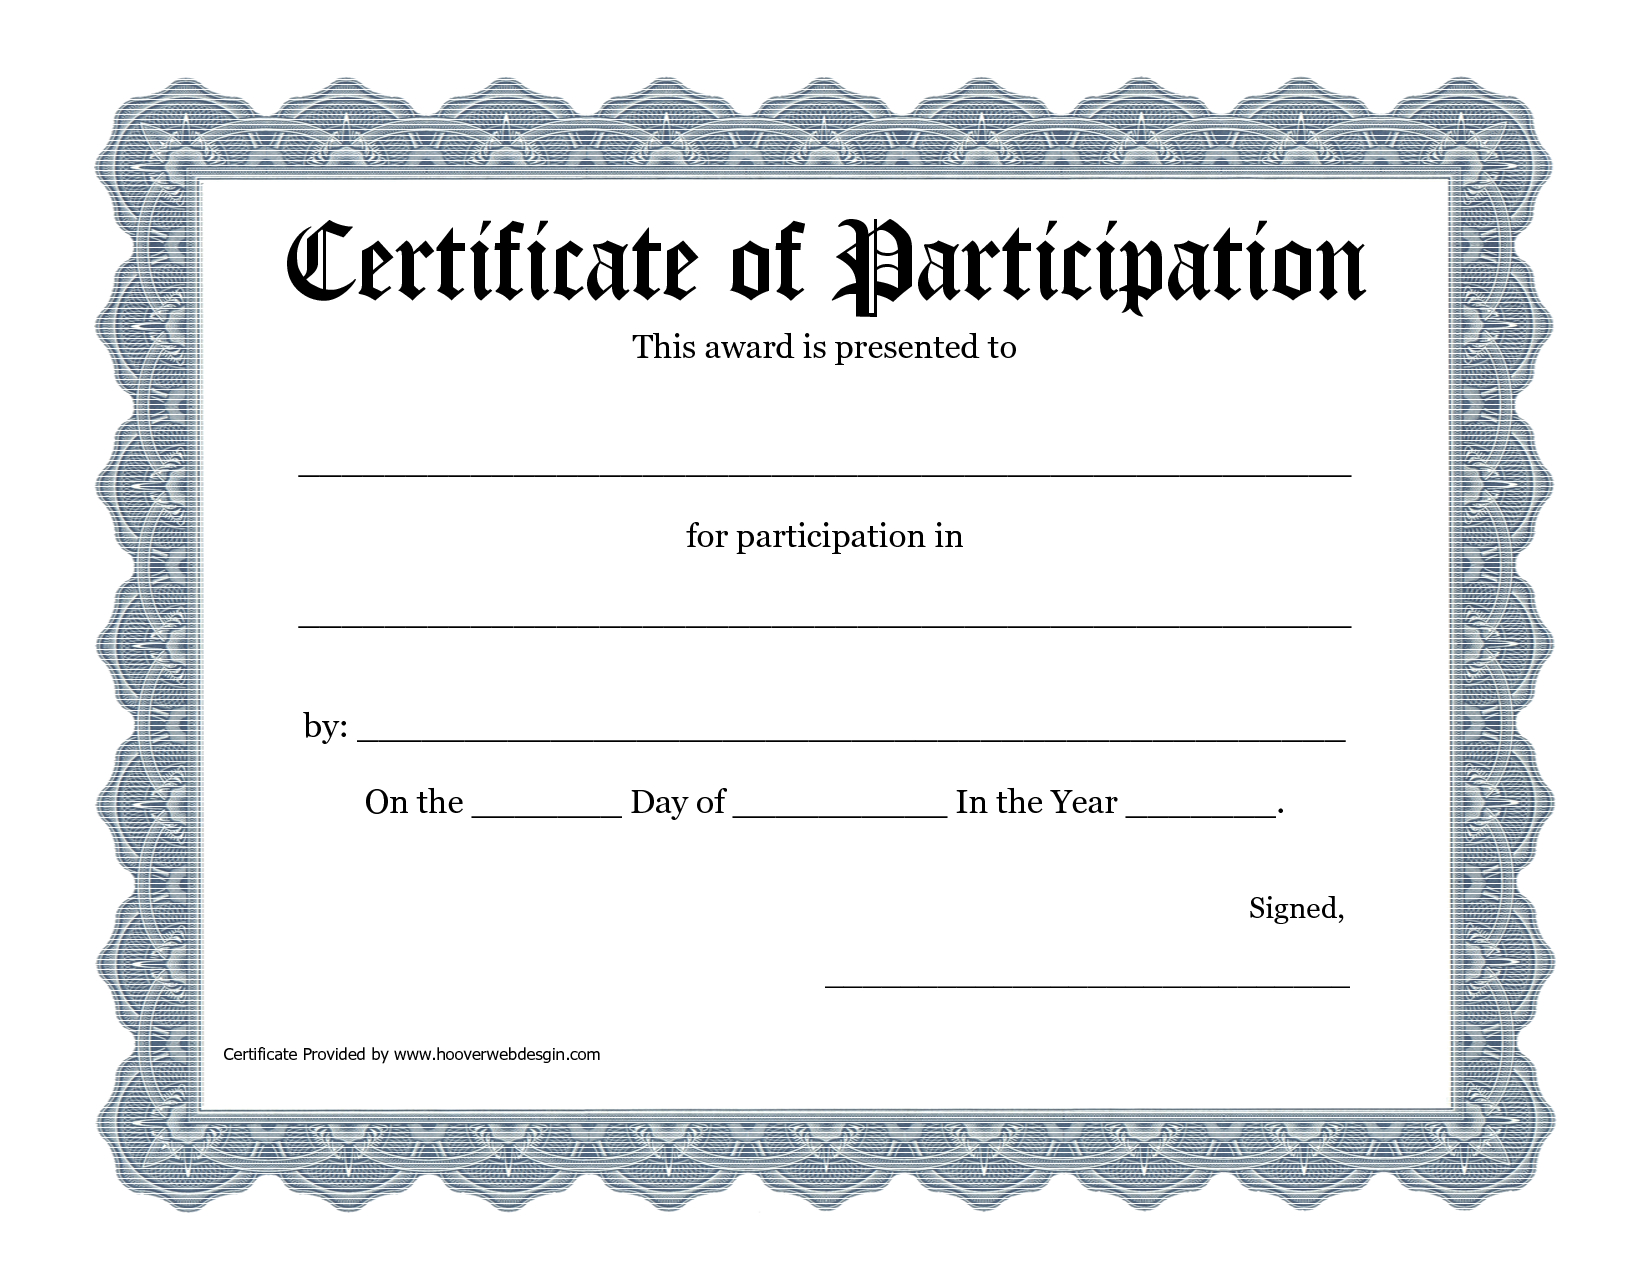 Free Printable Award Certificate Template - Bing Images In Certification Of Participation Free Template